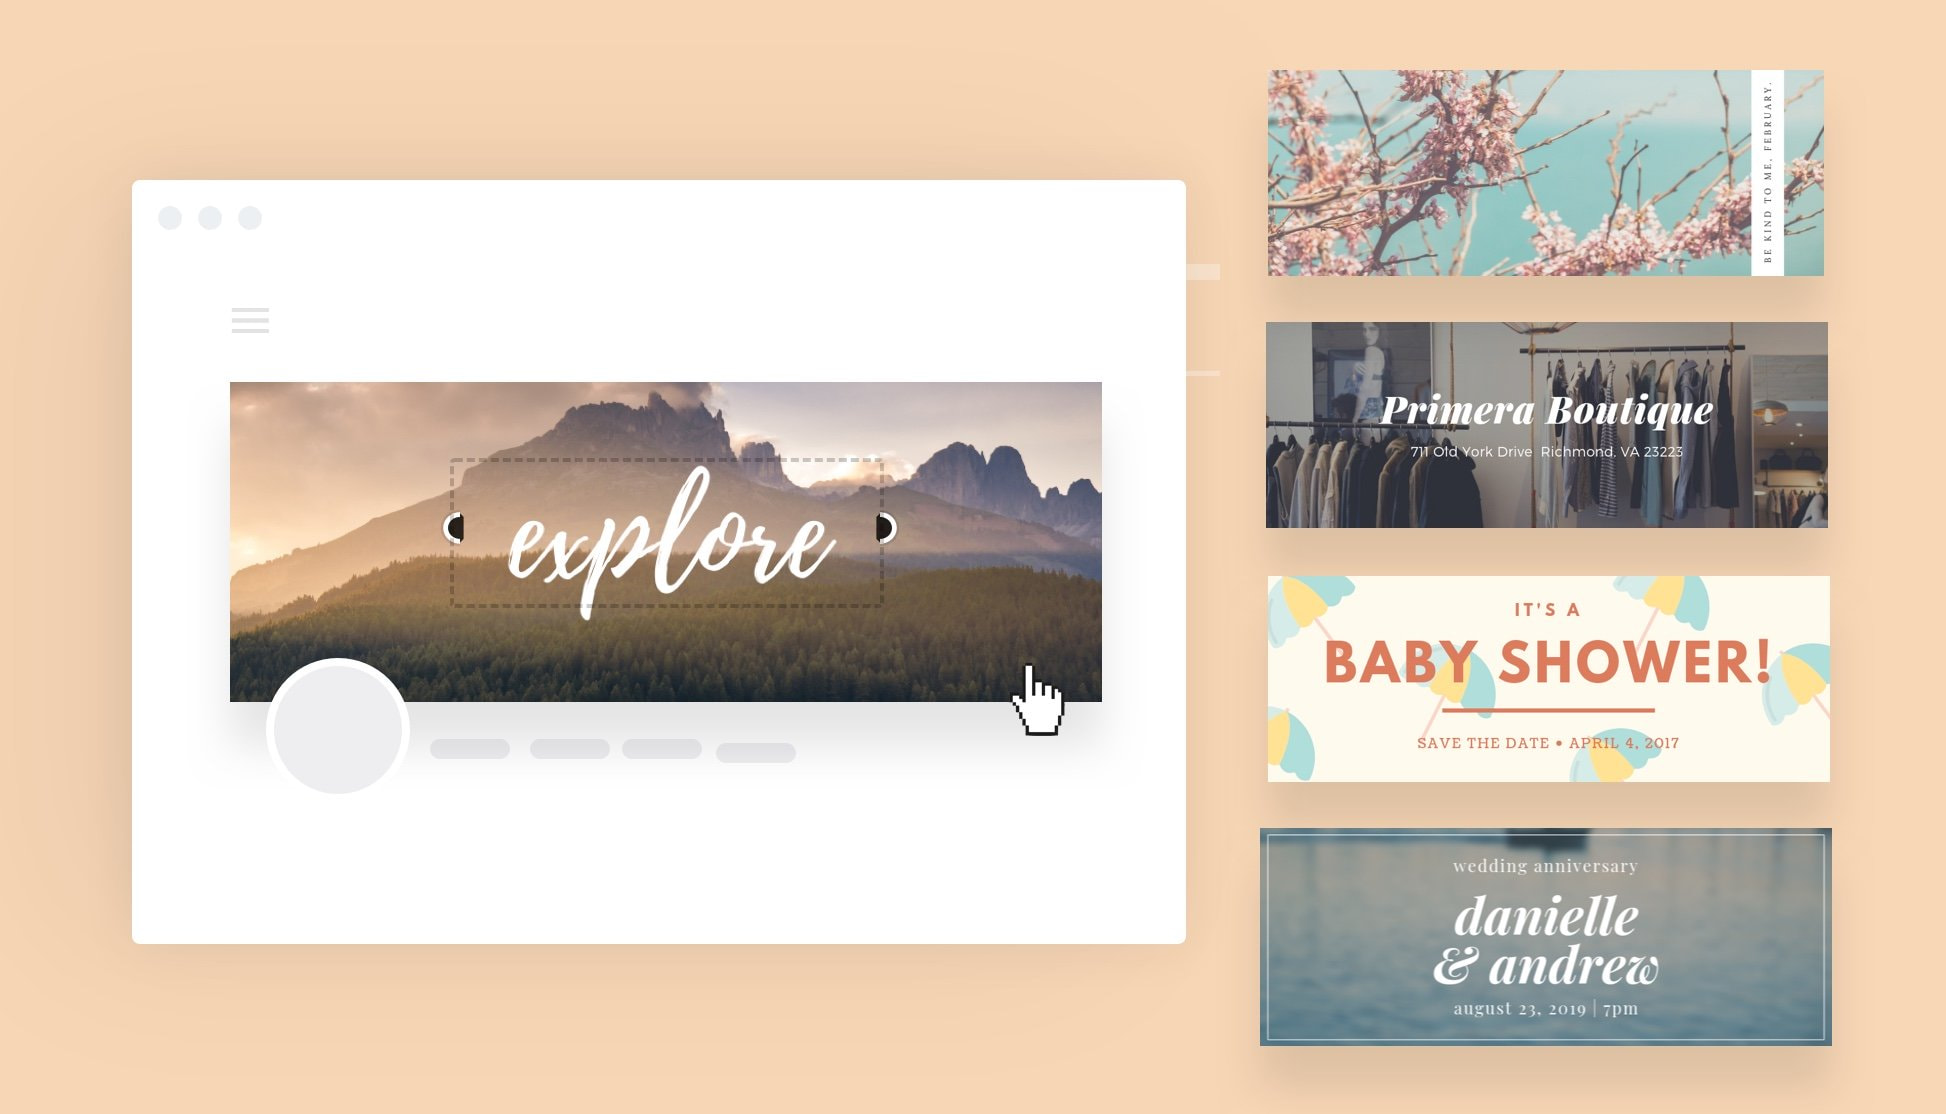 Free Online Banner Maker: Design Custom Banners in Canva